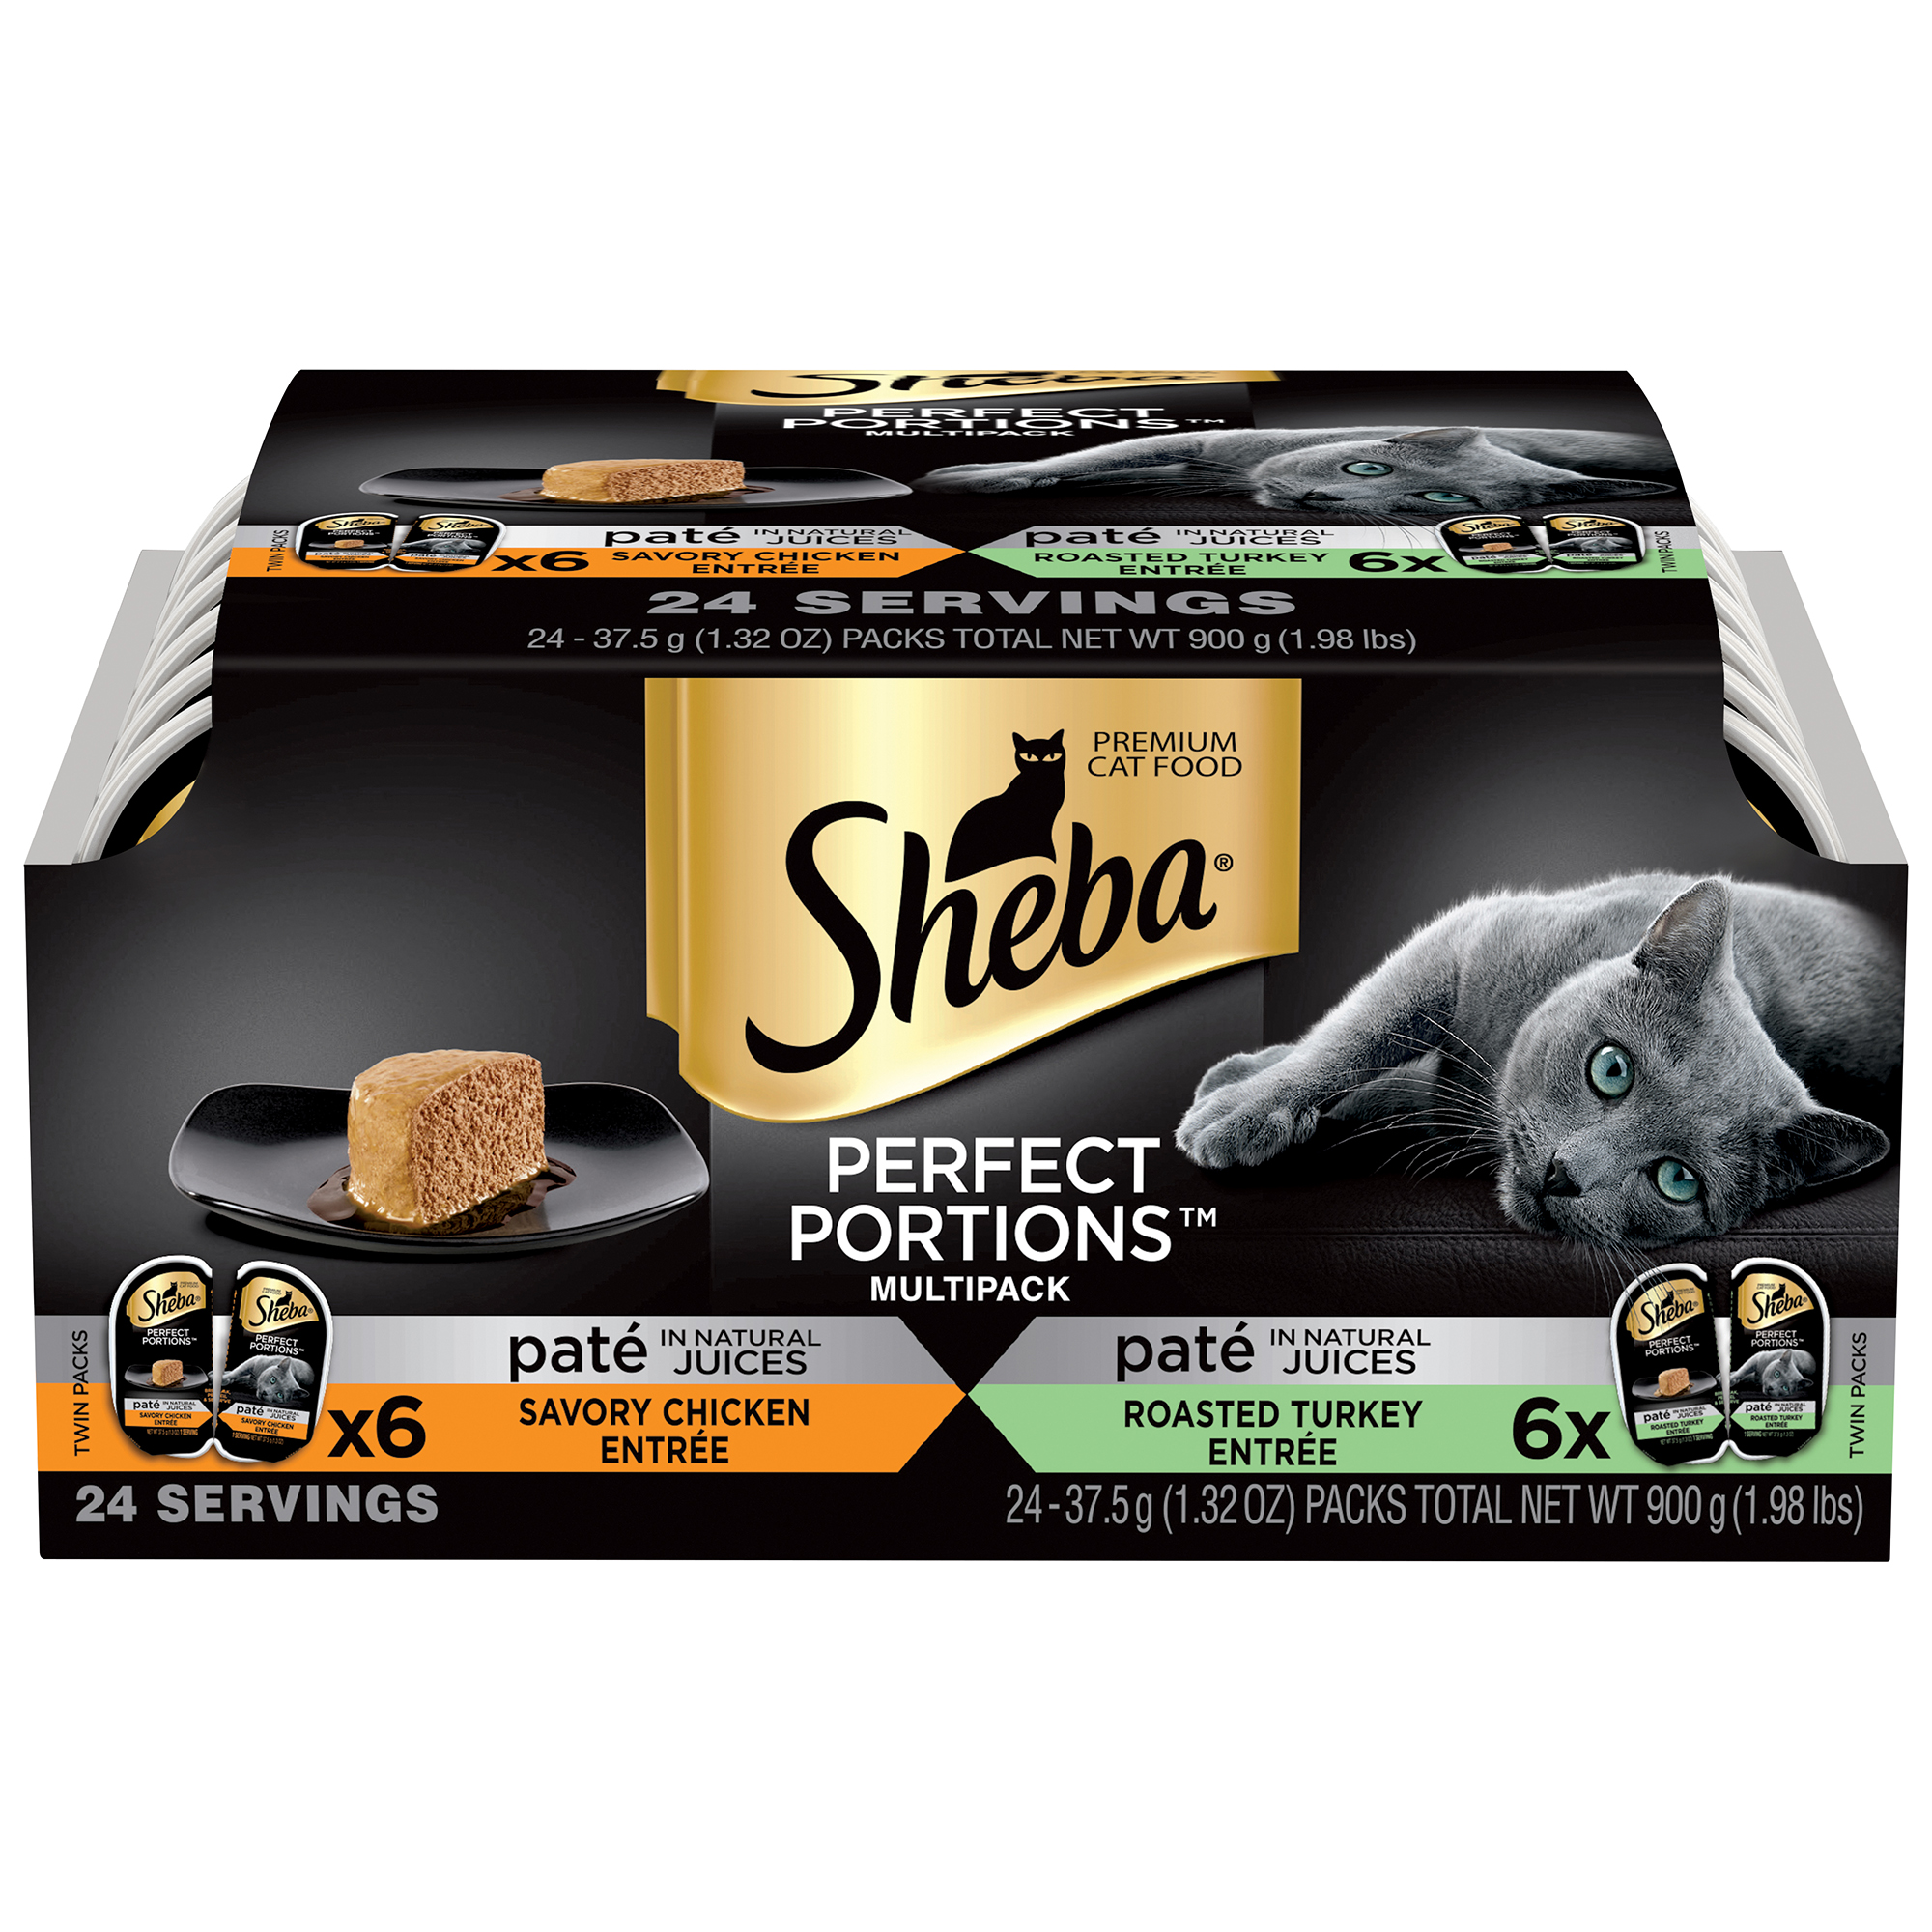 SHEBA PERFECT PORTIONS Multipack Chicken Entrée and Turkey Entrée Wet Cat Food 2.6 oz. (12 Twin Packs)